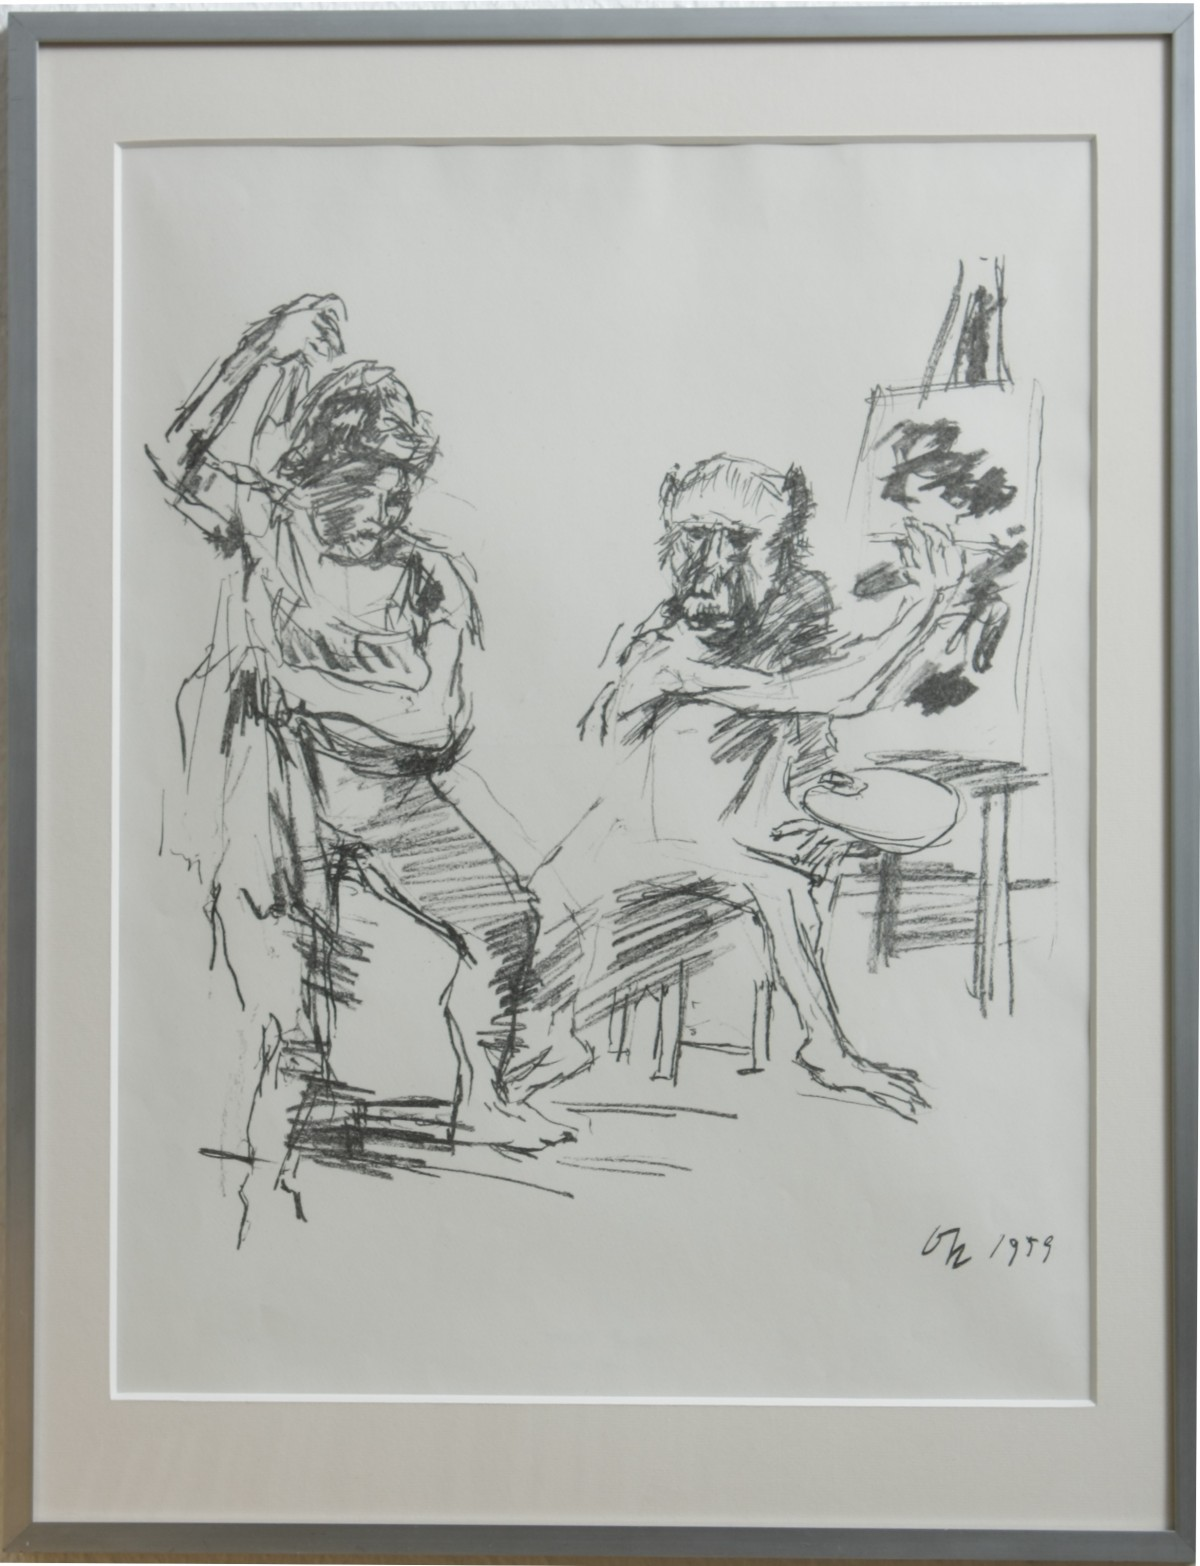 Image of the artwork